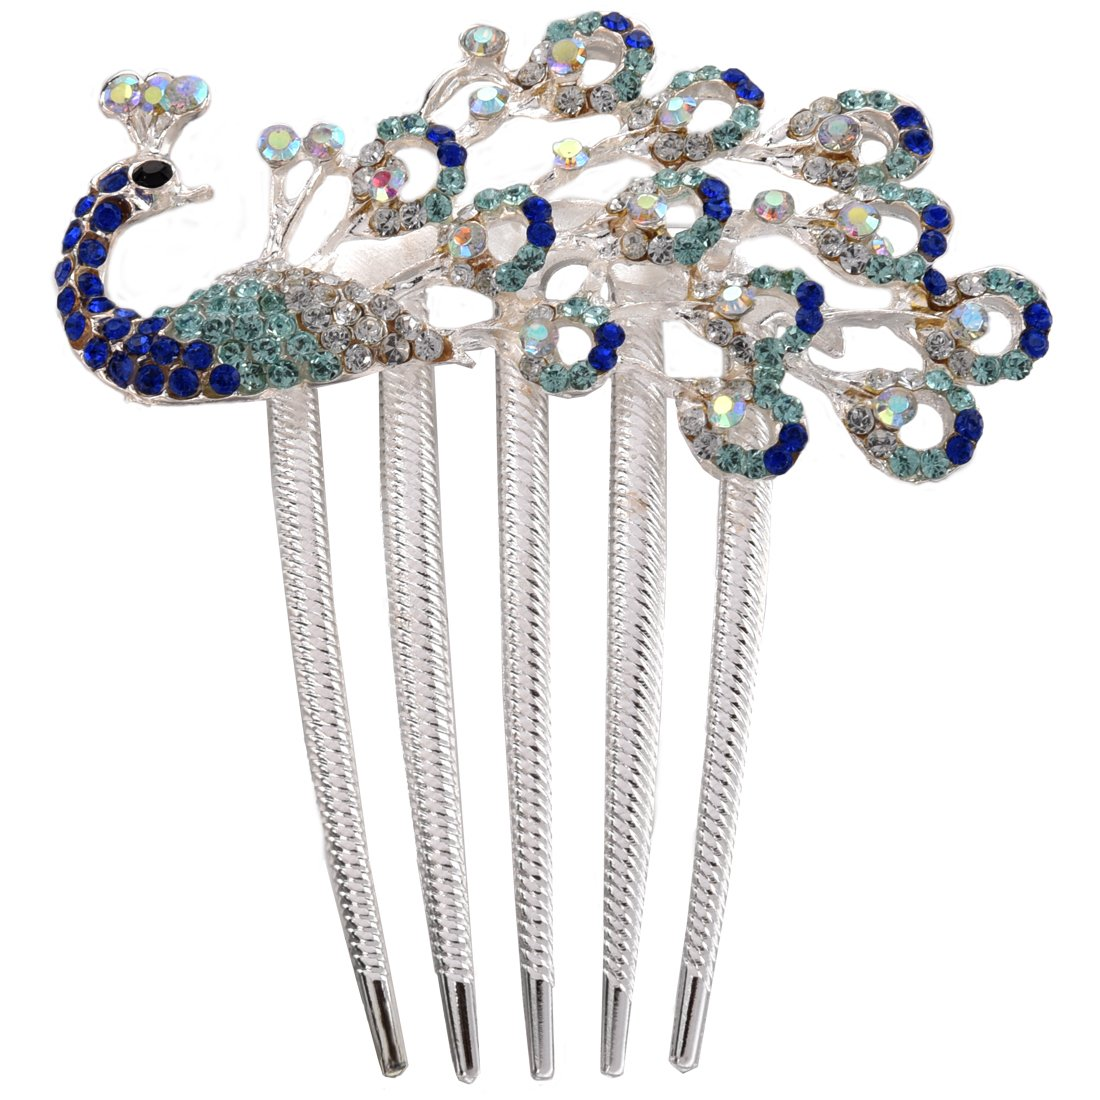 SODIAL(R) Lovely Vintage Jewelry Crystal Peacock Hair Clips for hair clip Beauty Tools 0